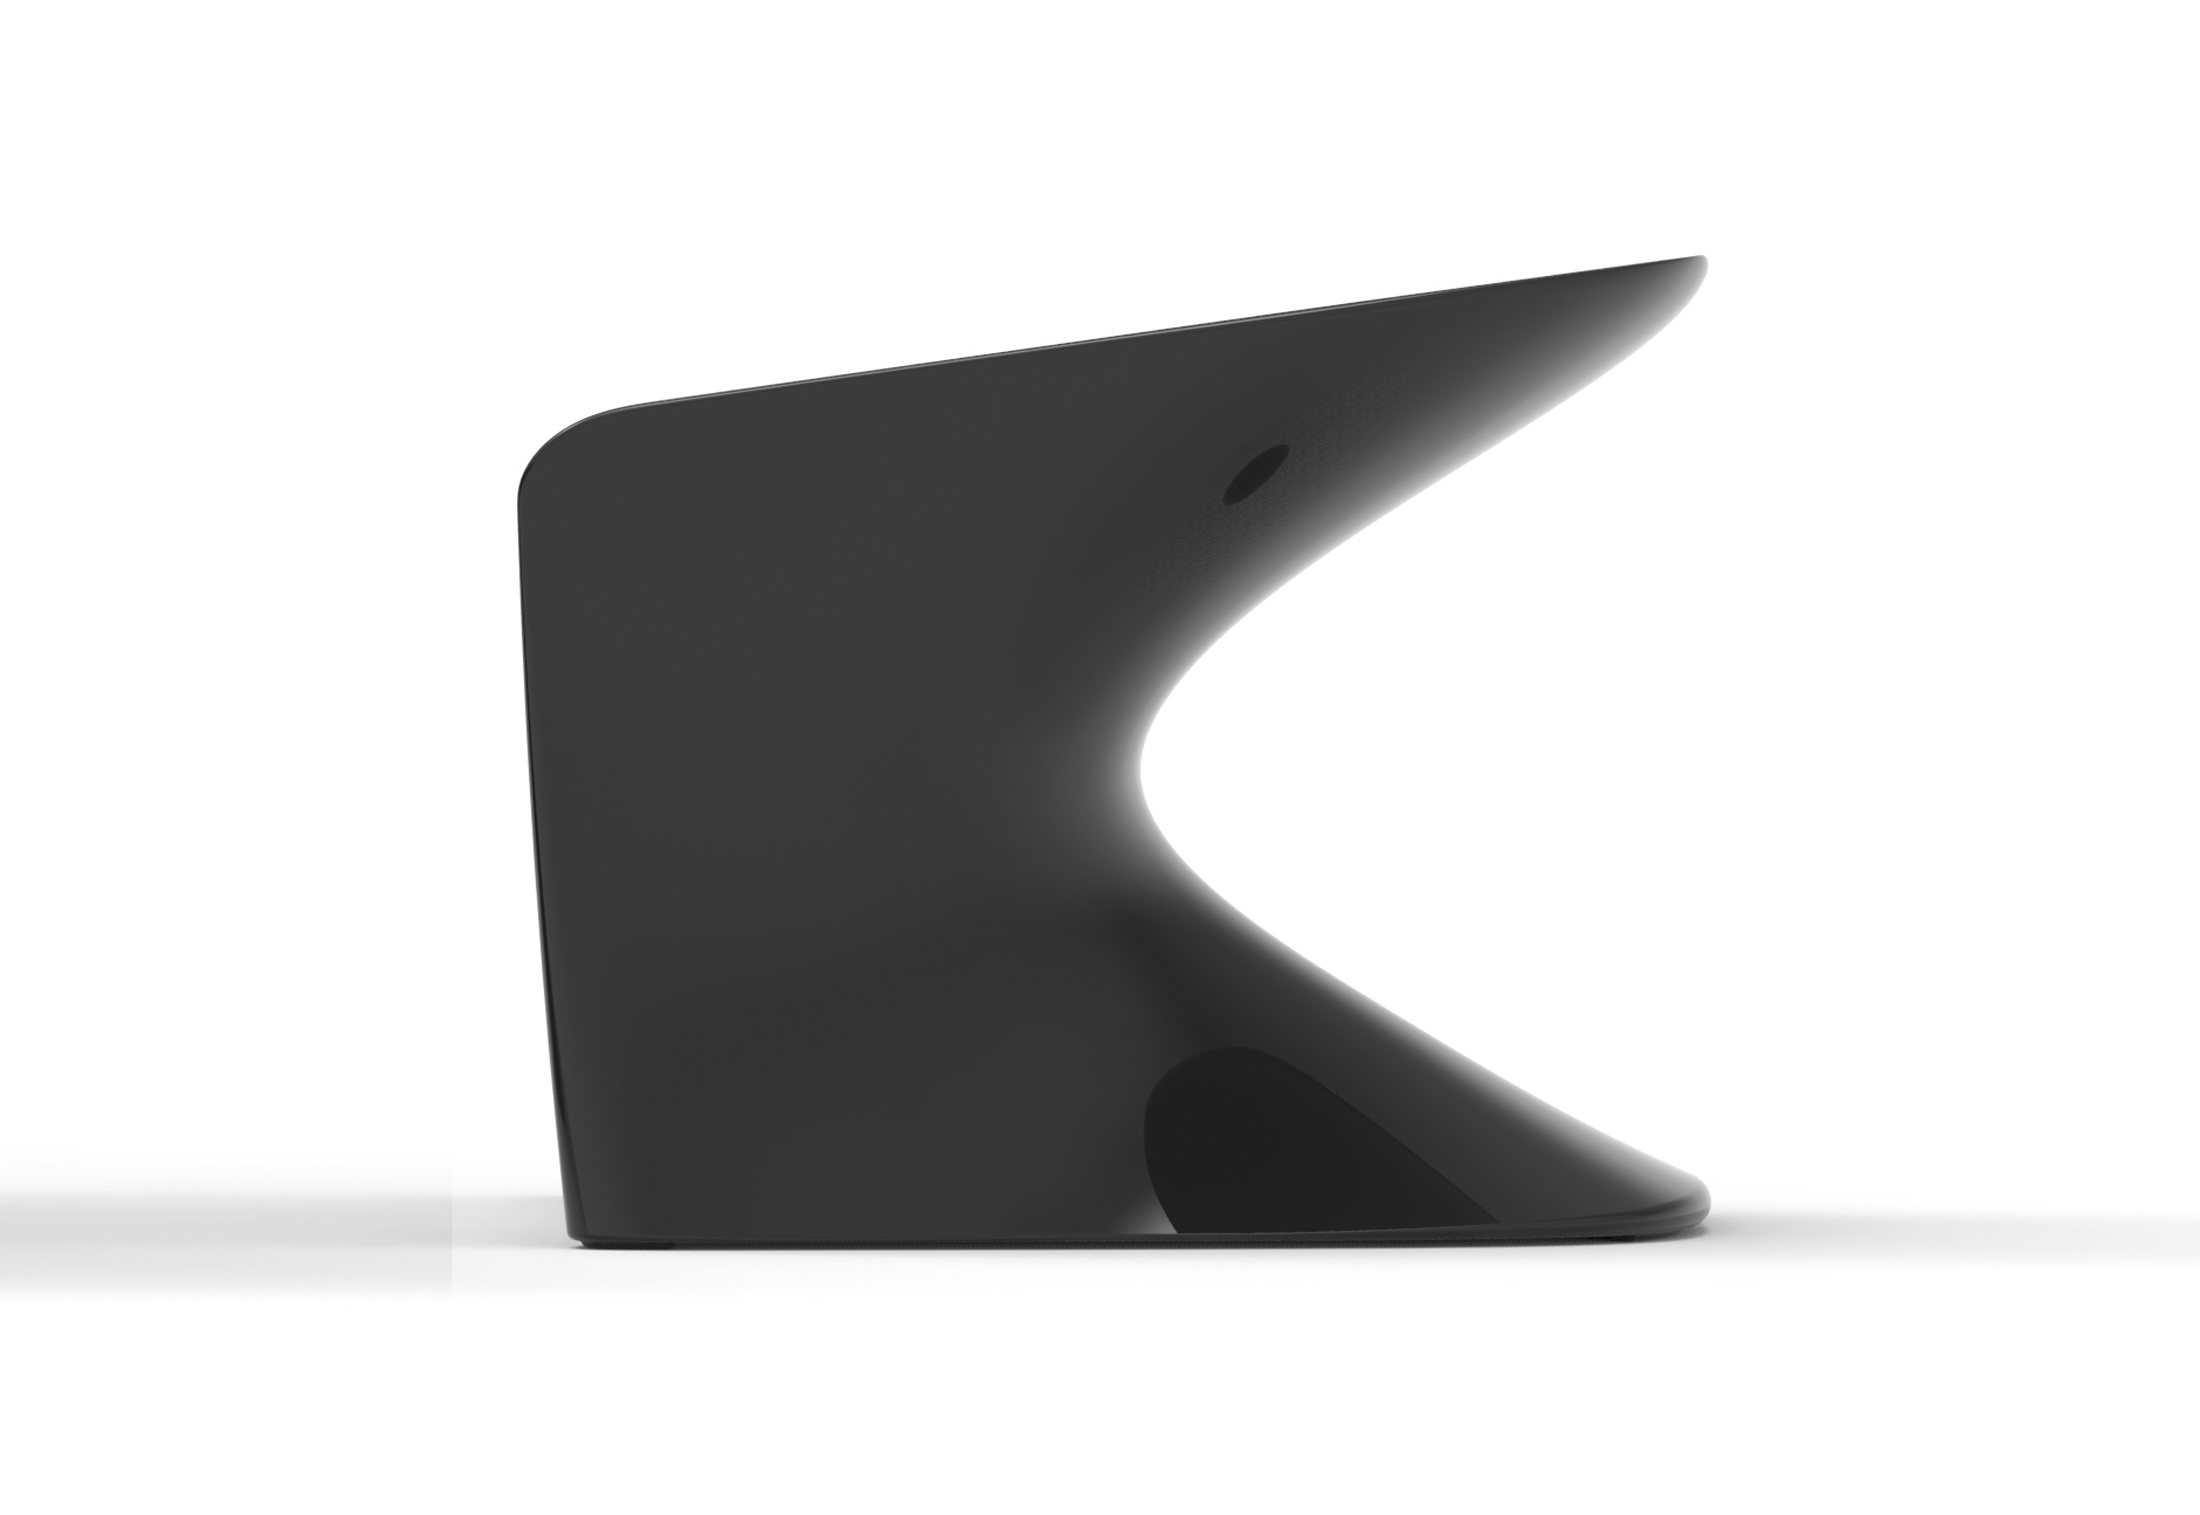 WING Armchair by A-cero for VONDOM